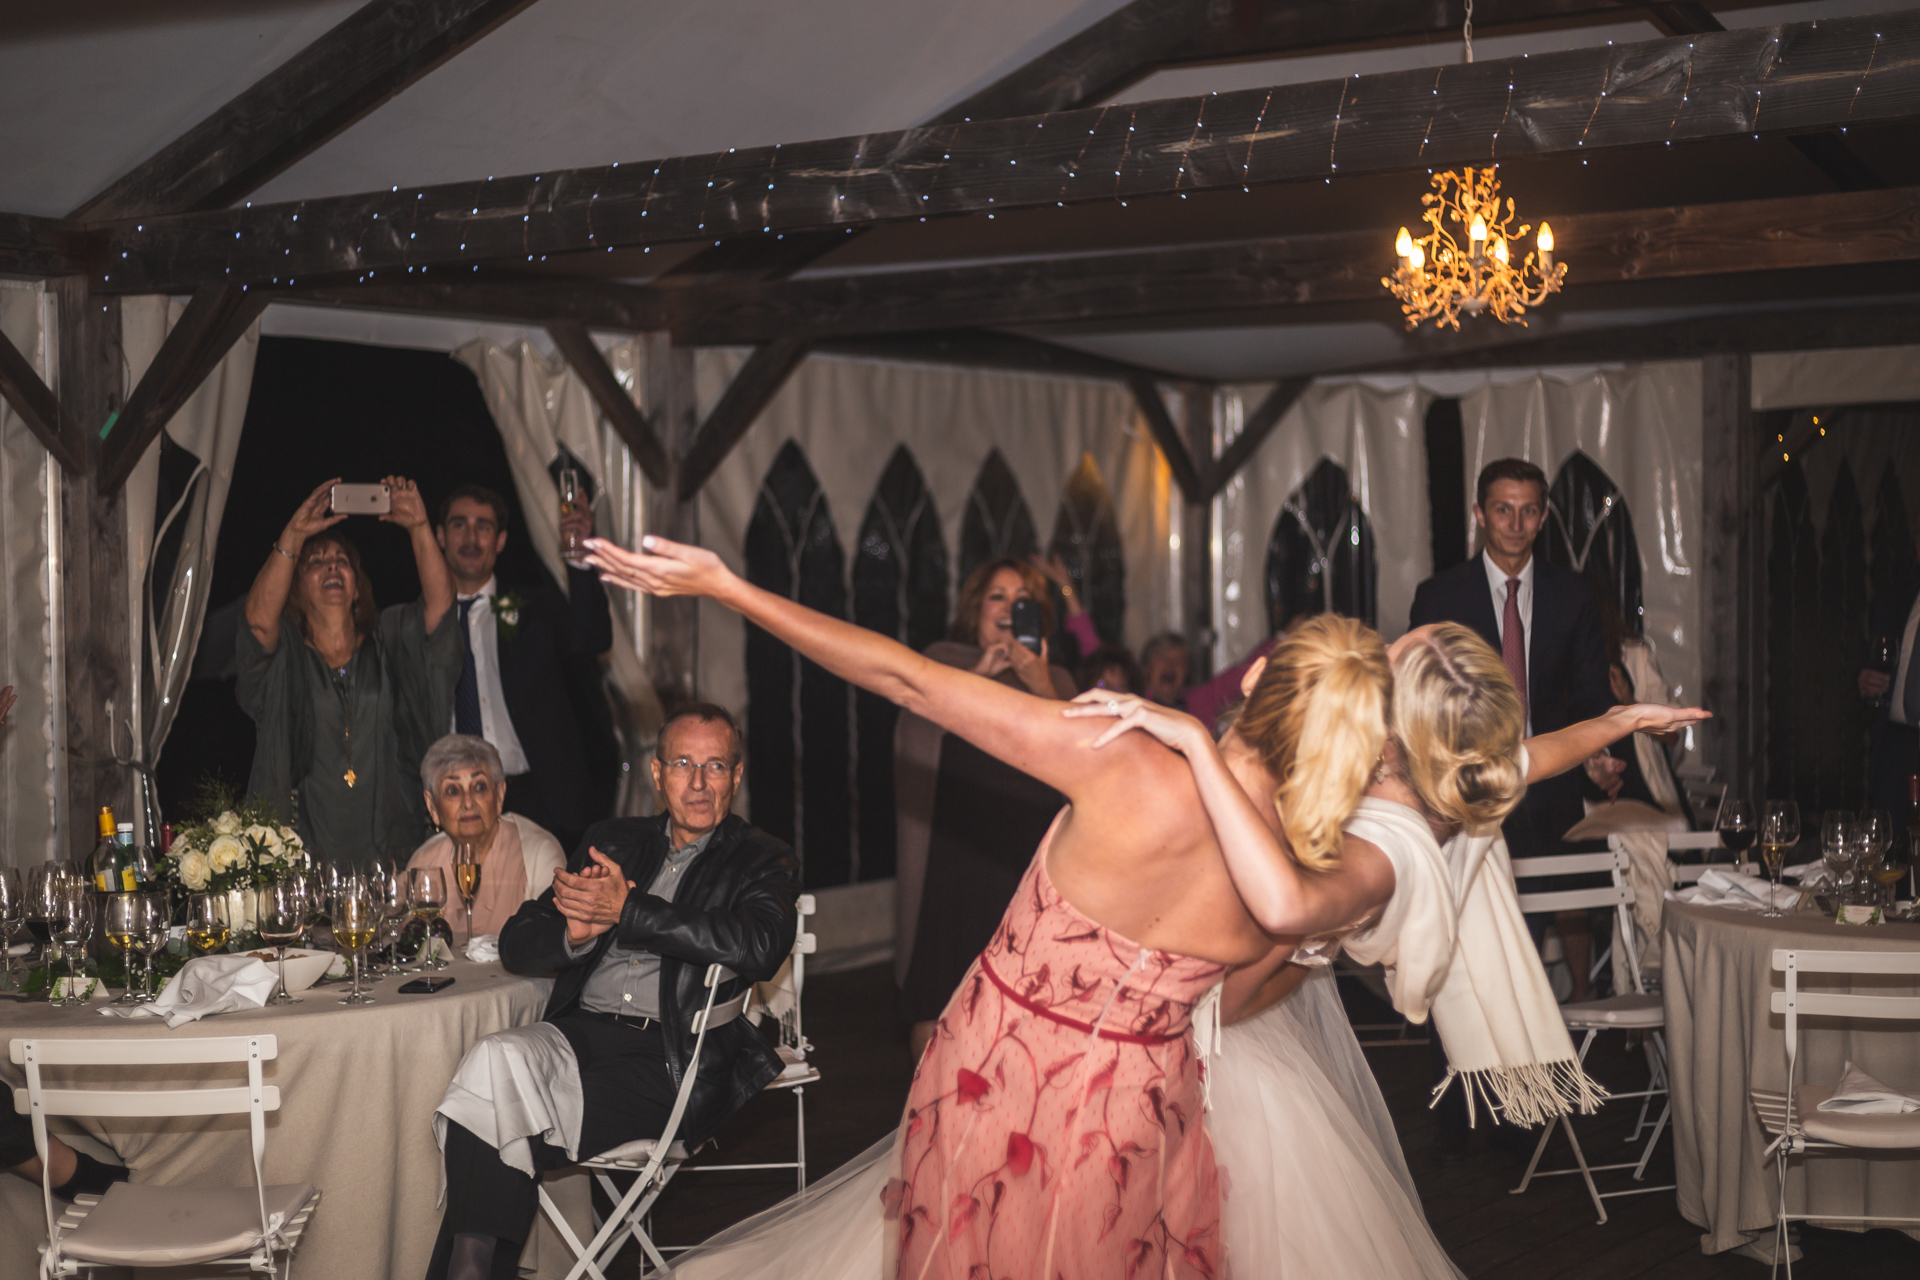 Wedding Photographer Tarn - South of France | The bride and her sister enjoyed a carefree dance together